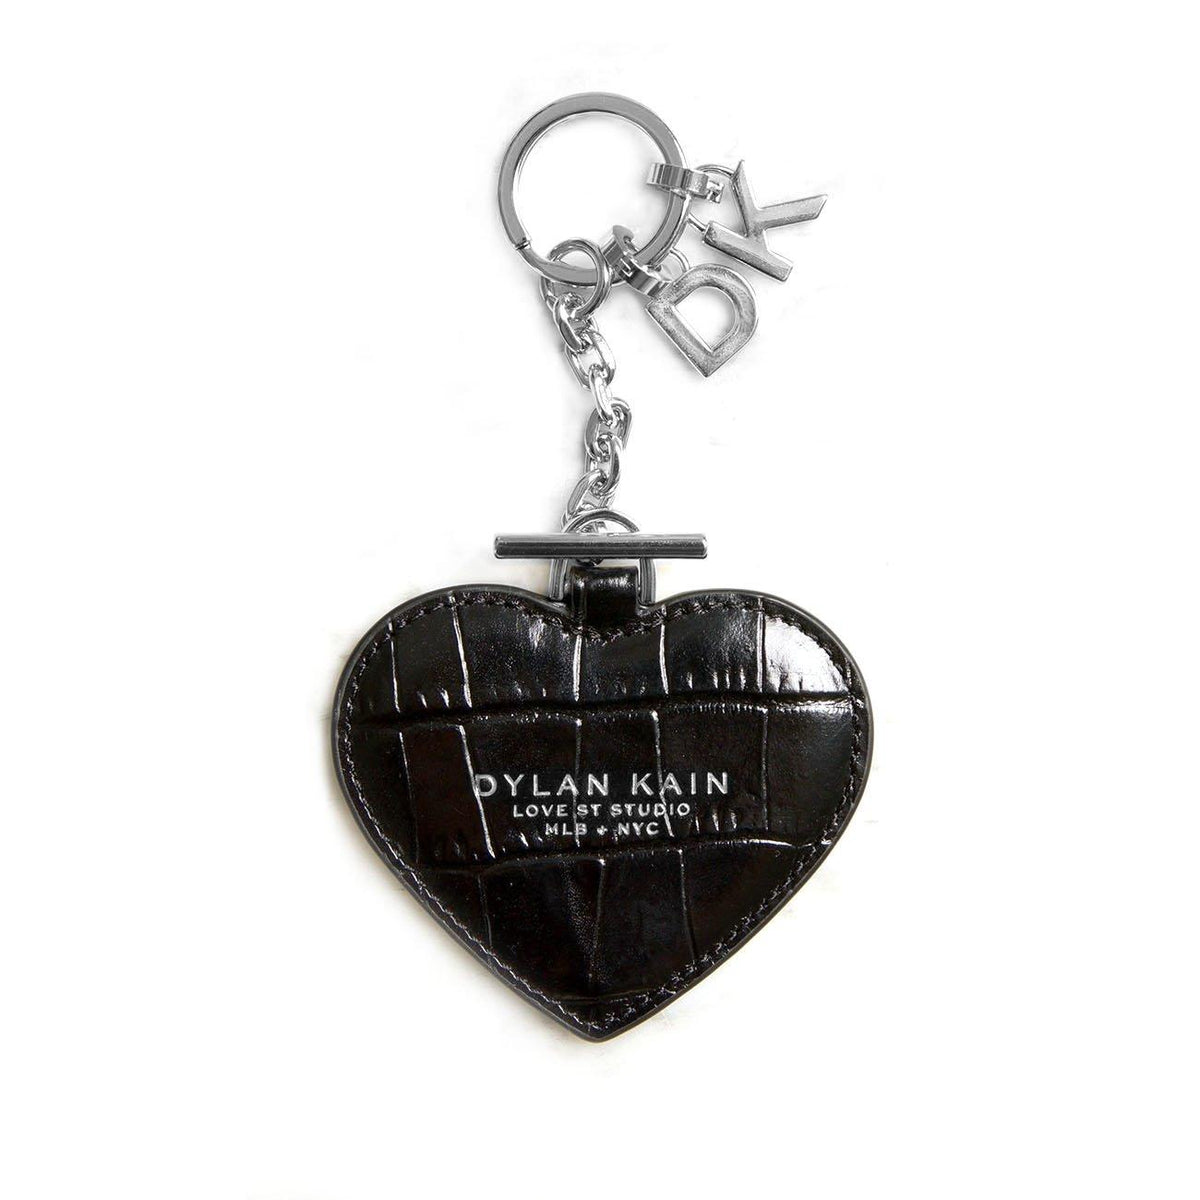 Ladies Personalised Key Chain Gift Set Silver Dylan Kain